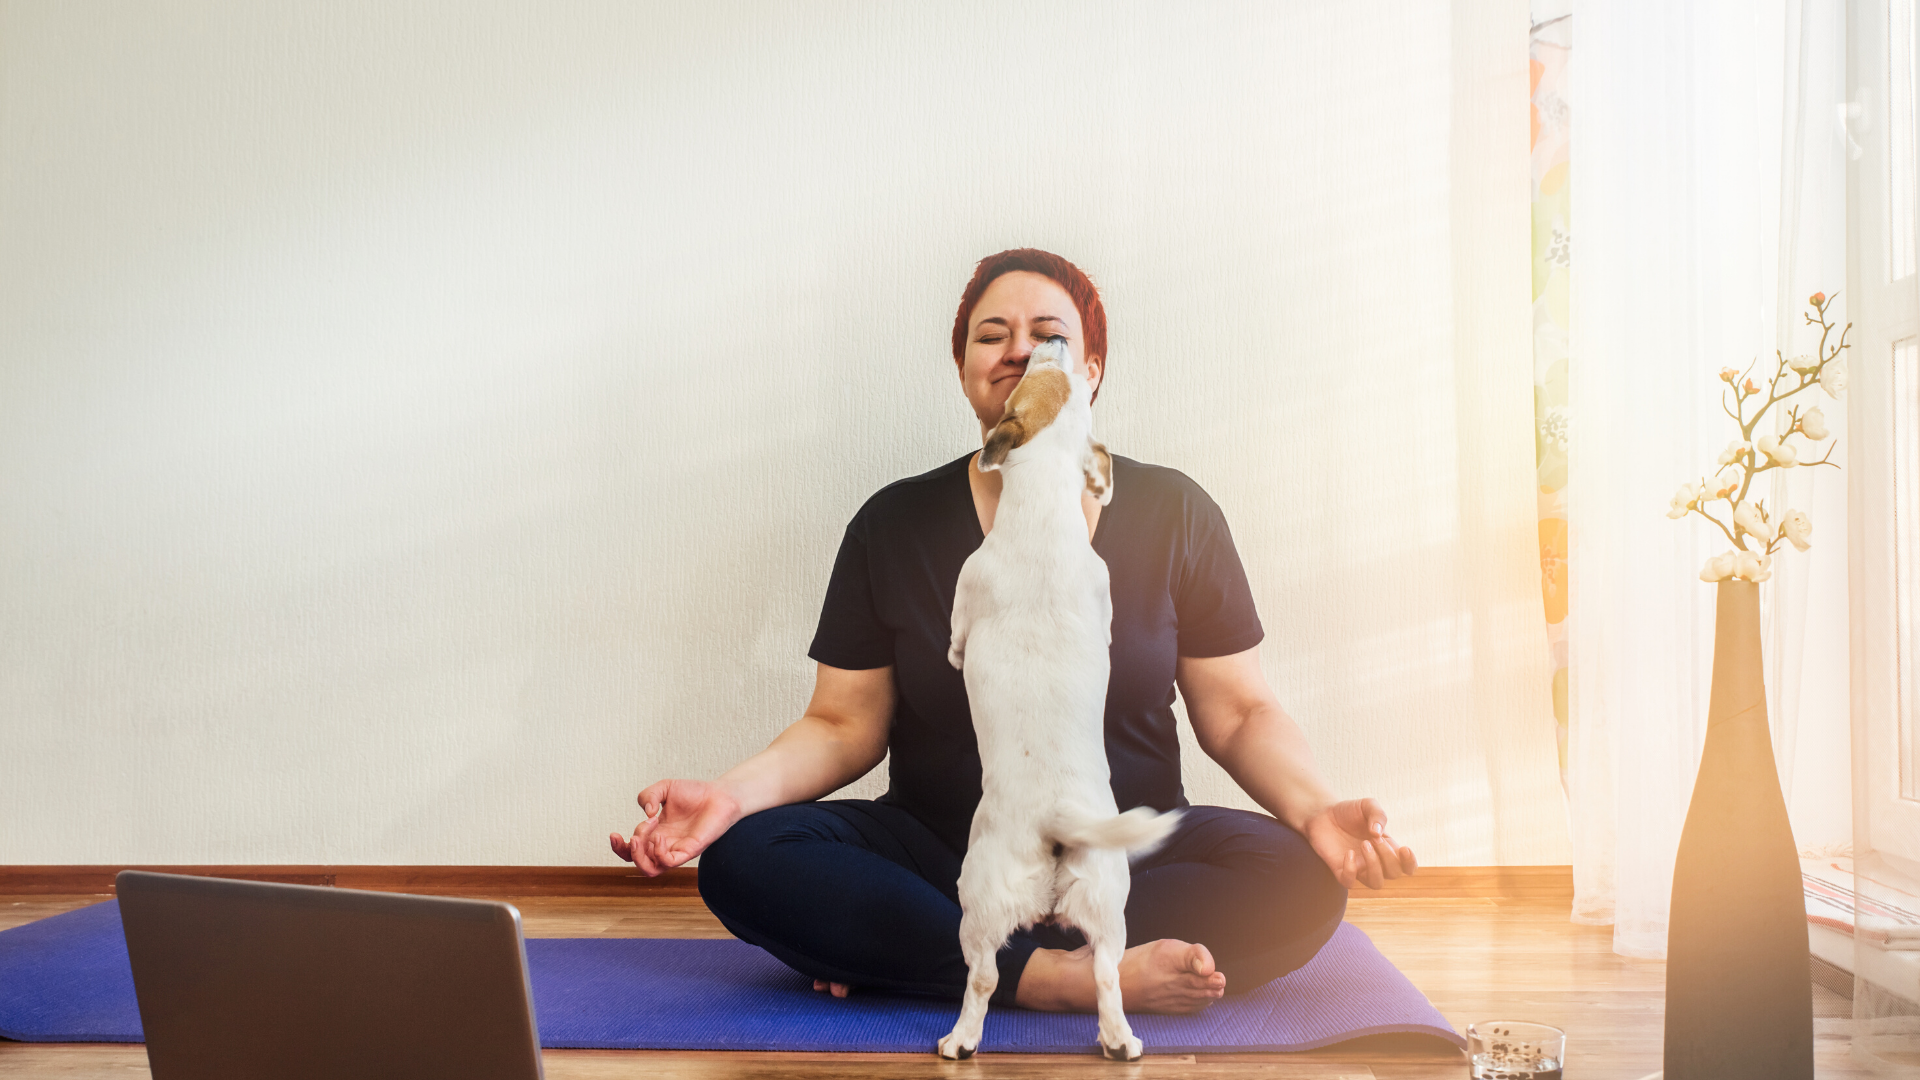 yoga_student_practicing_meditation_with_her_dog_at_home